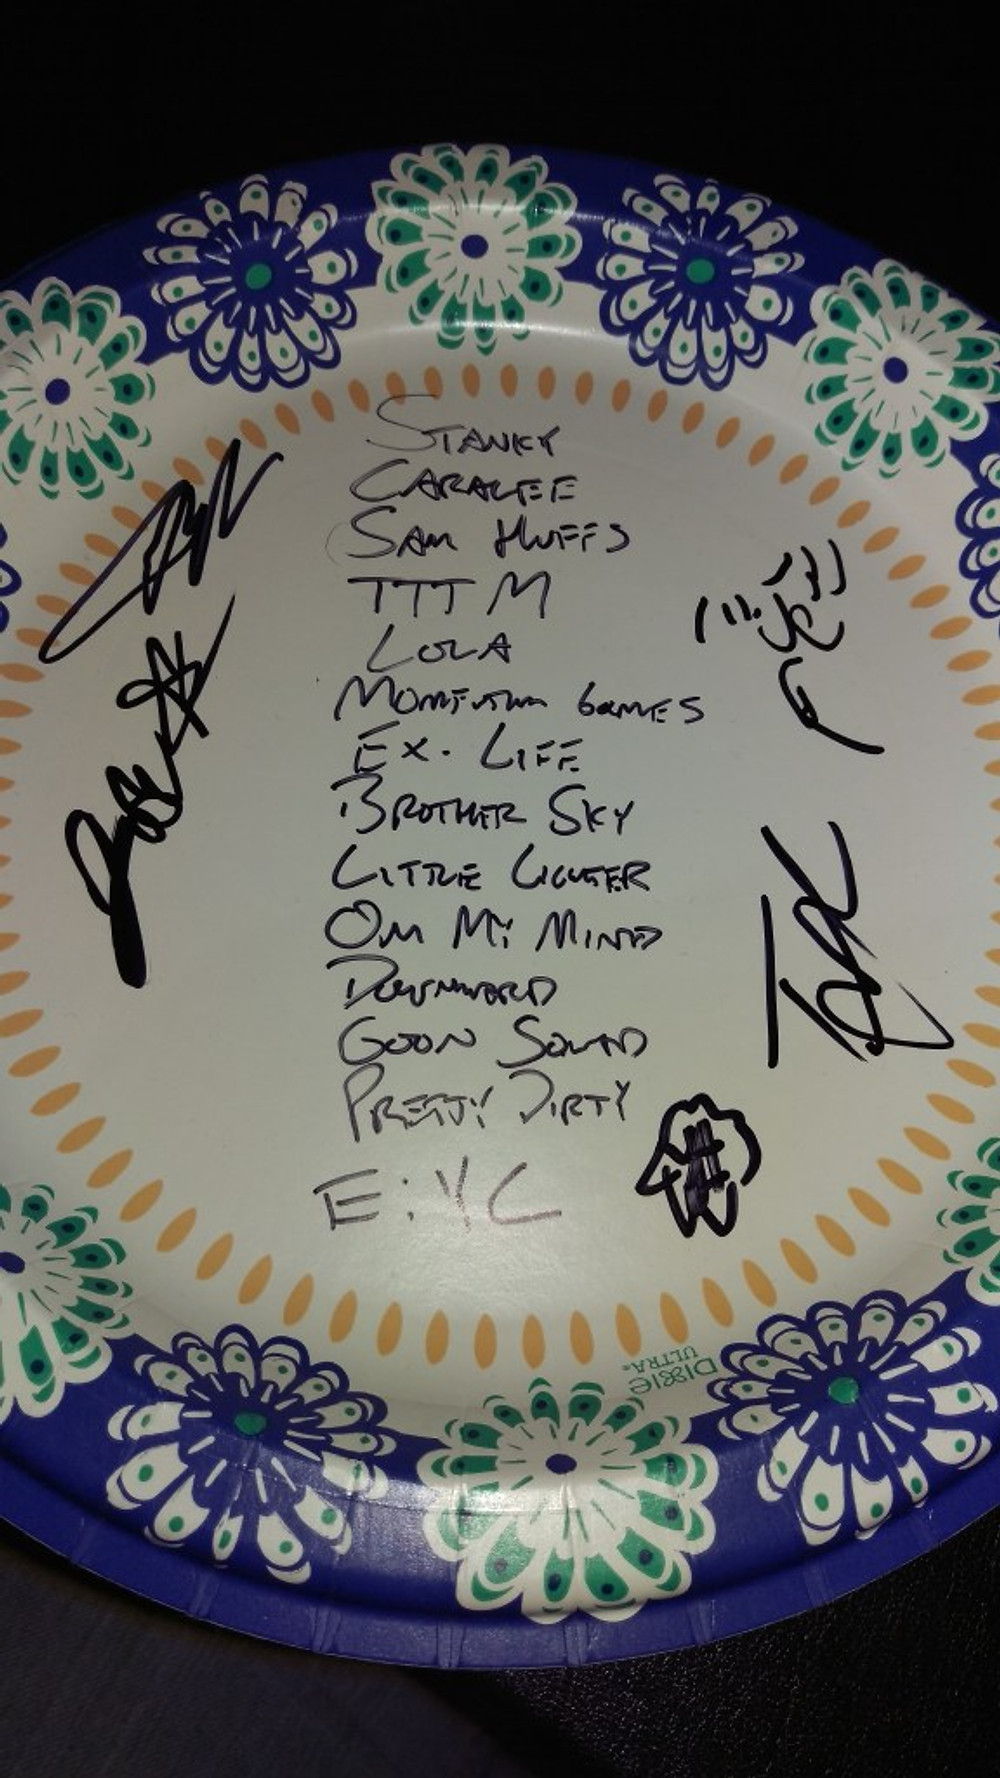 The set list written on a paper plate with the band's signatures.